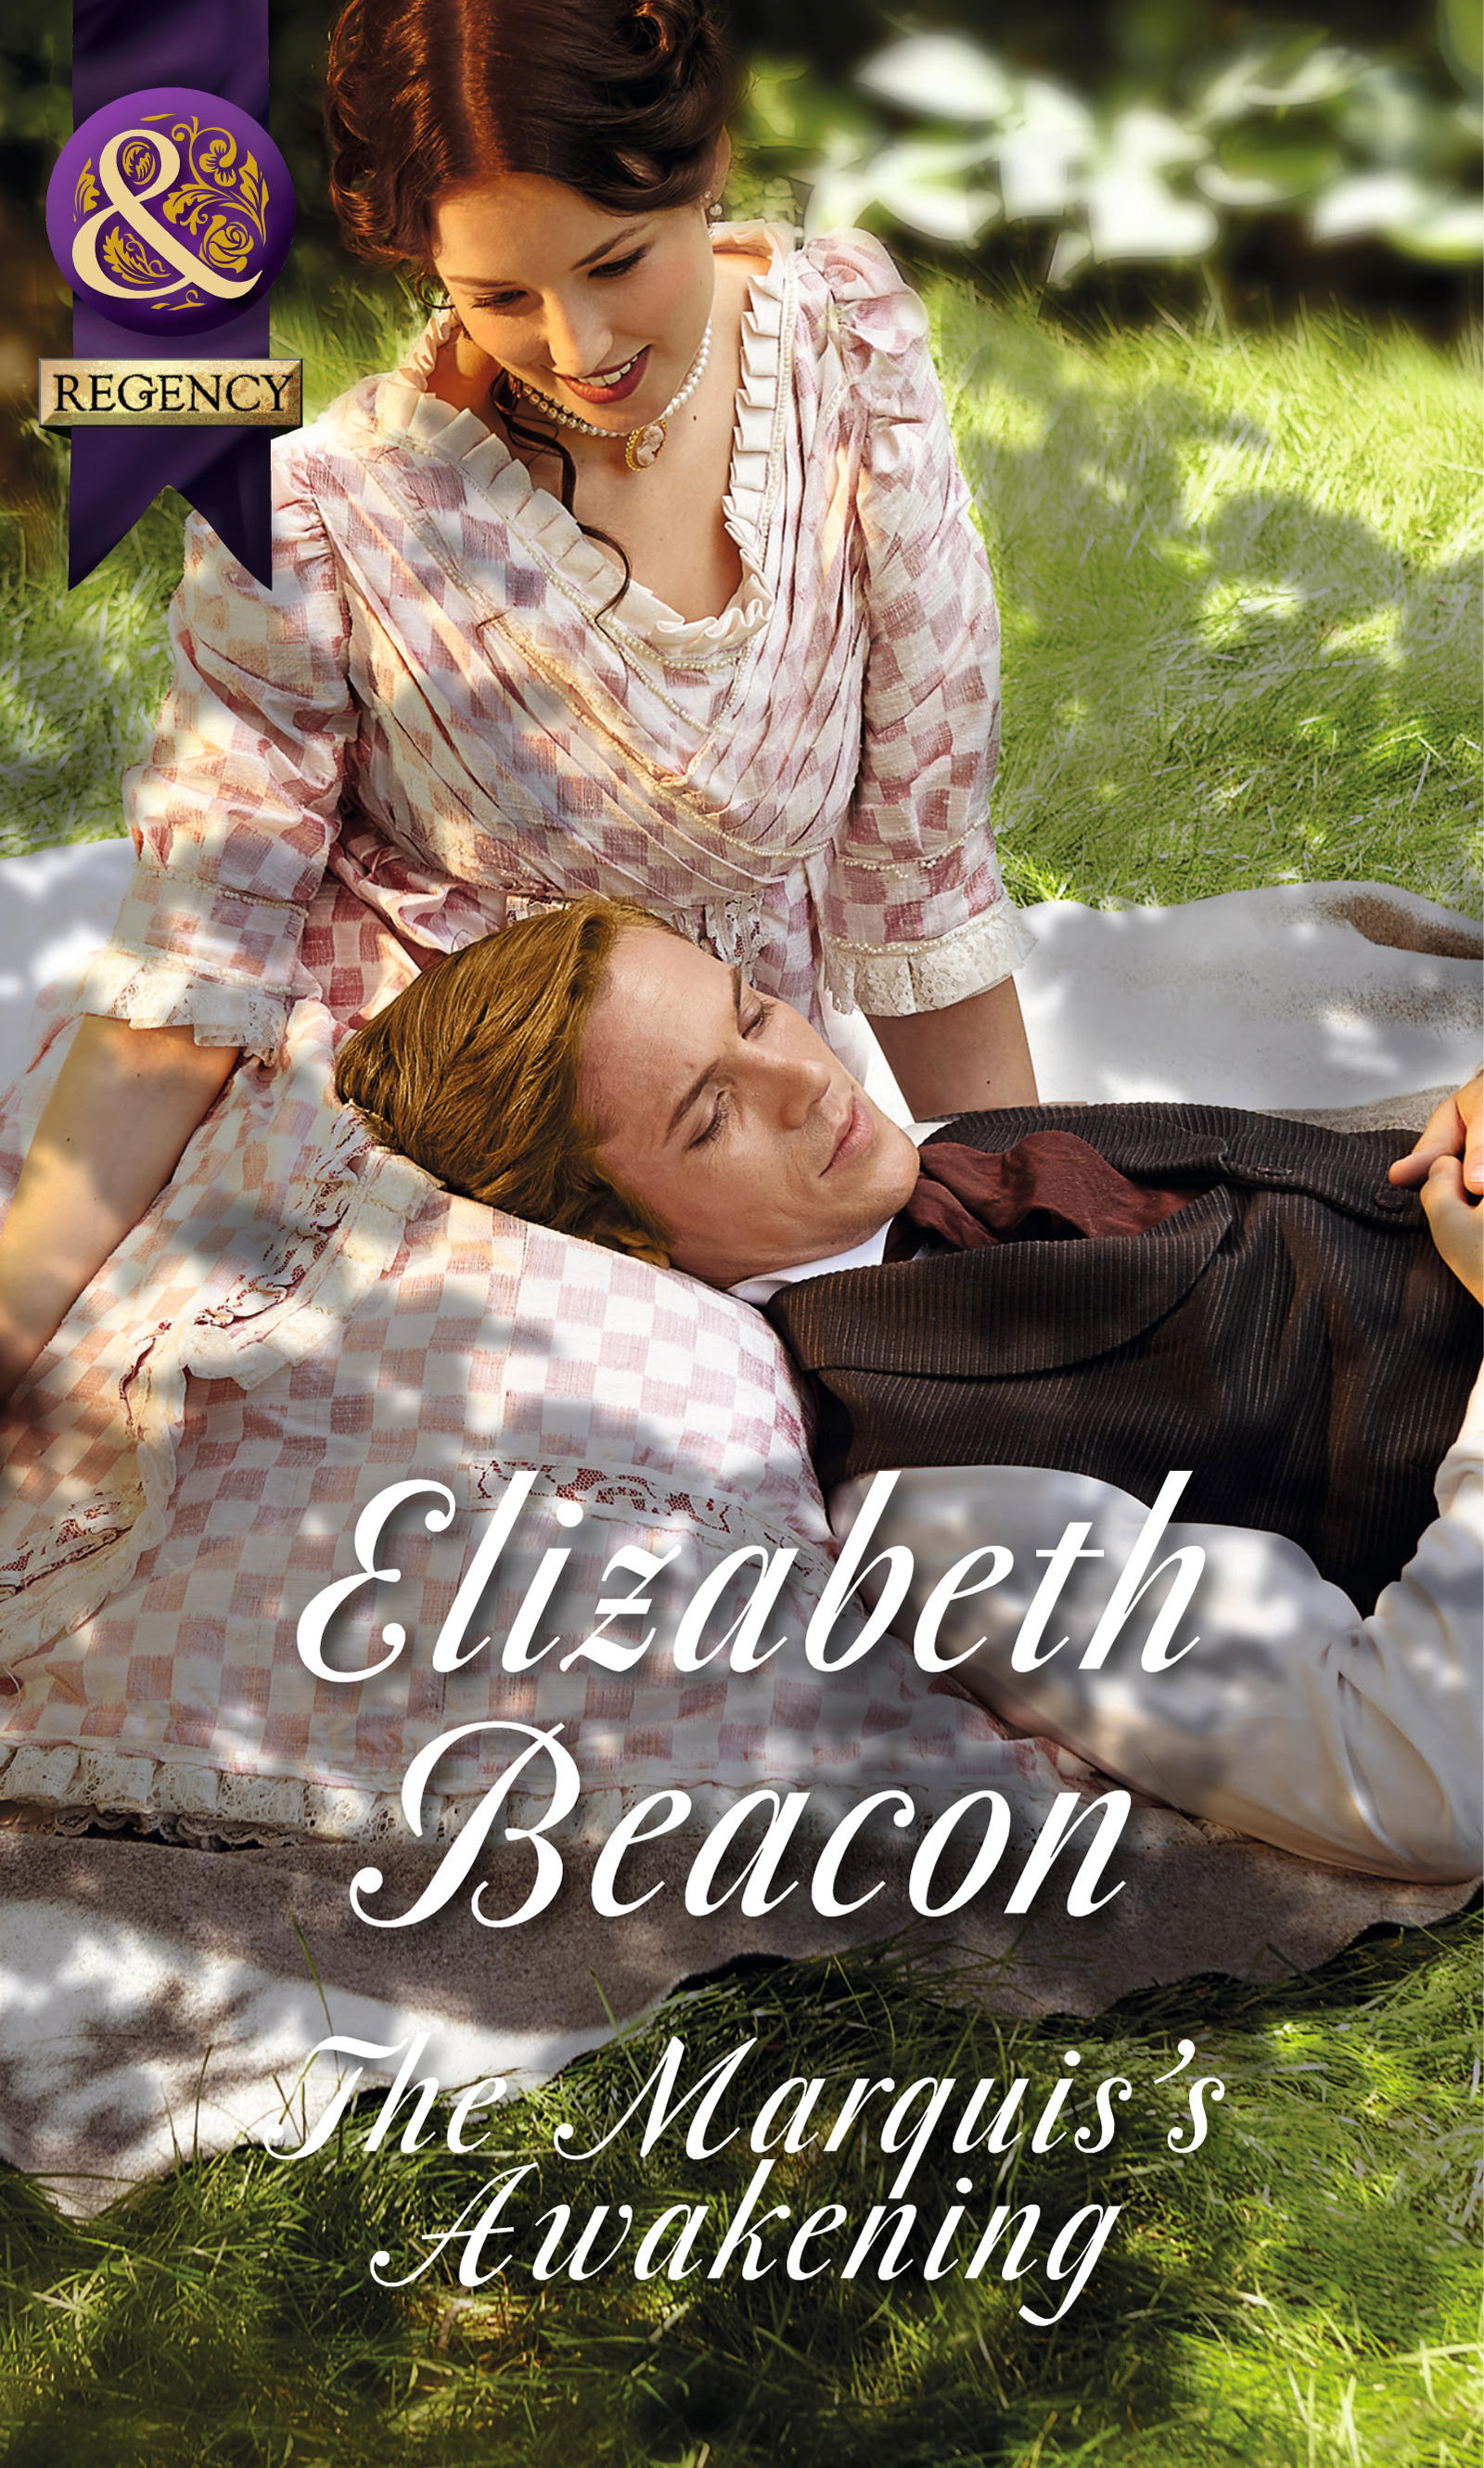 The Marquis's Awakening (Mills & Boon Historical) (A Year of Scandal - Book 2)